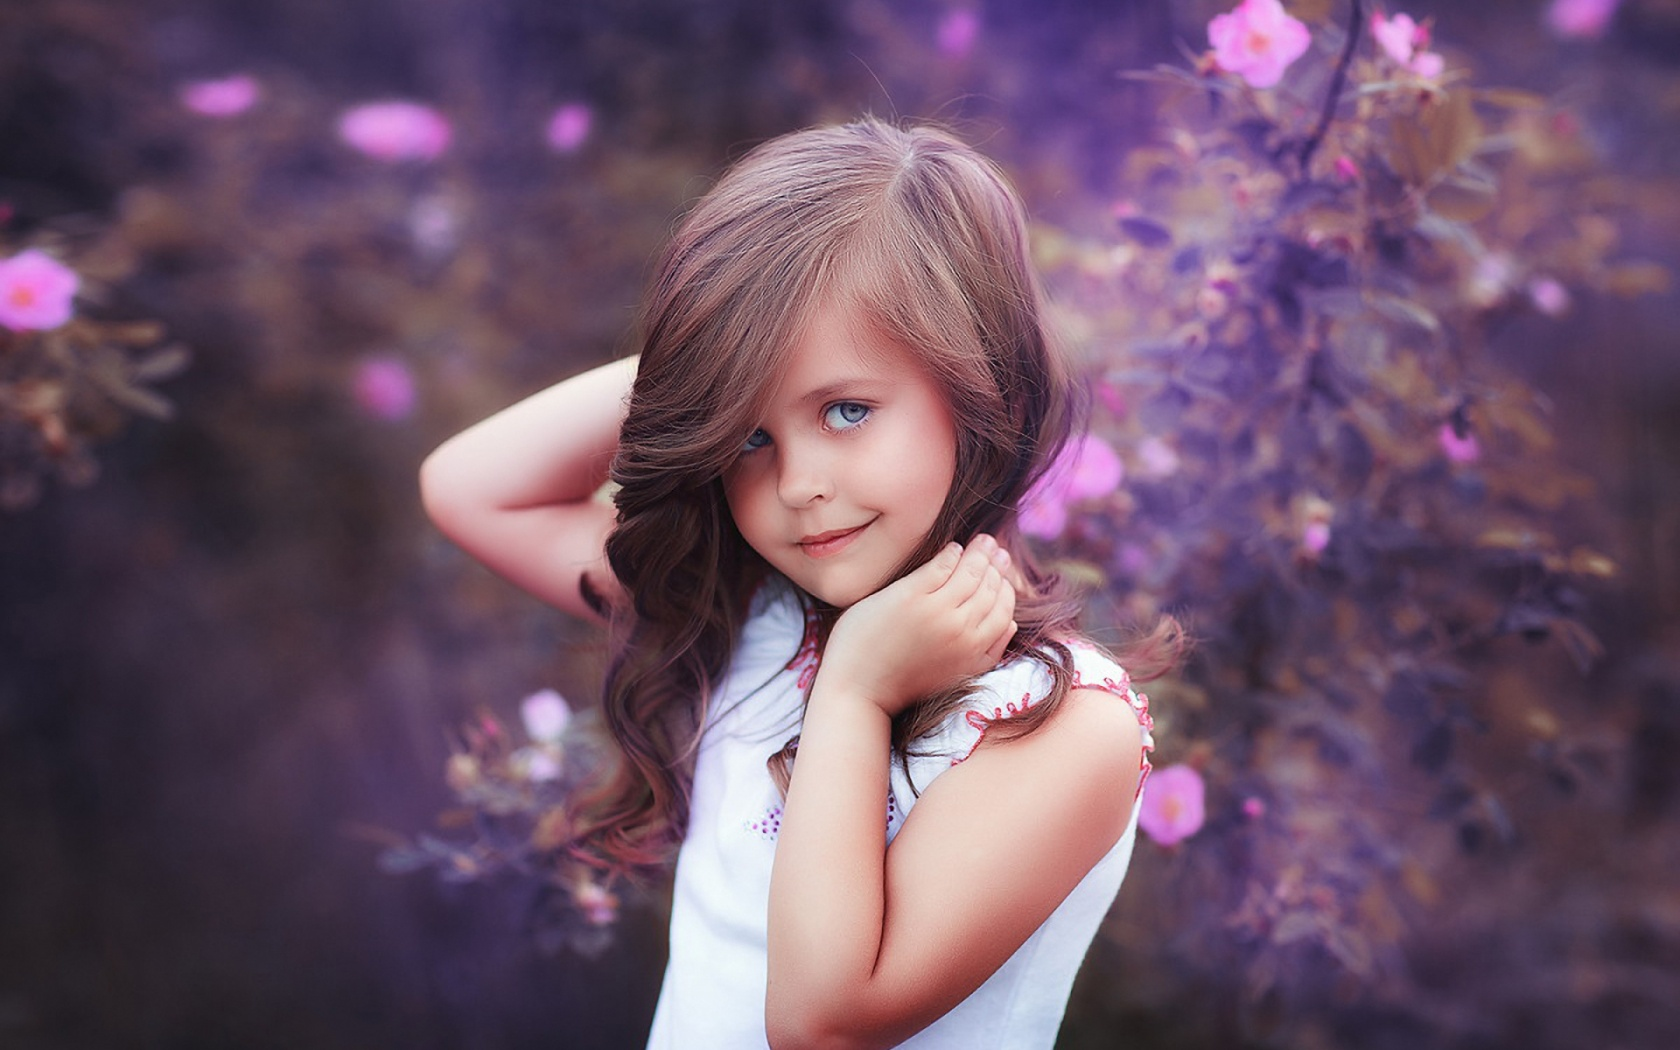 Small Girl Love Wallpaper : 30 Super cool Hairstyles For Girls